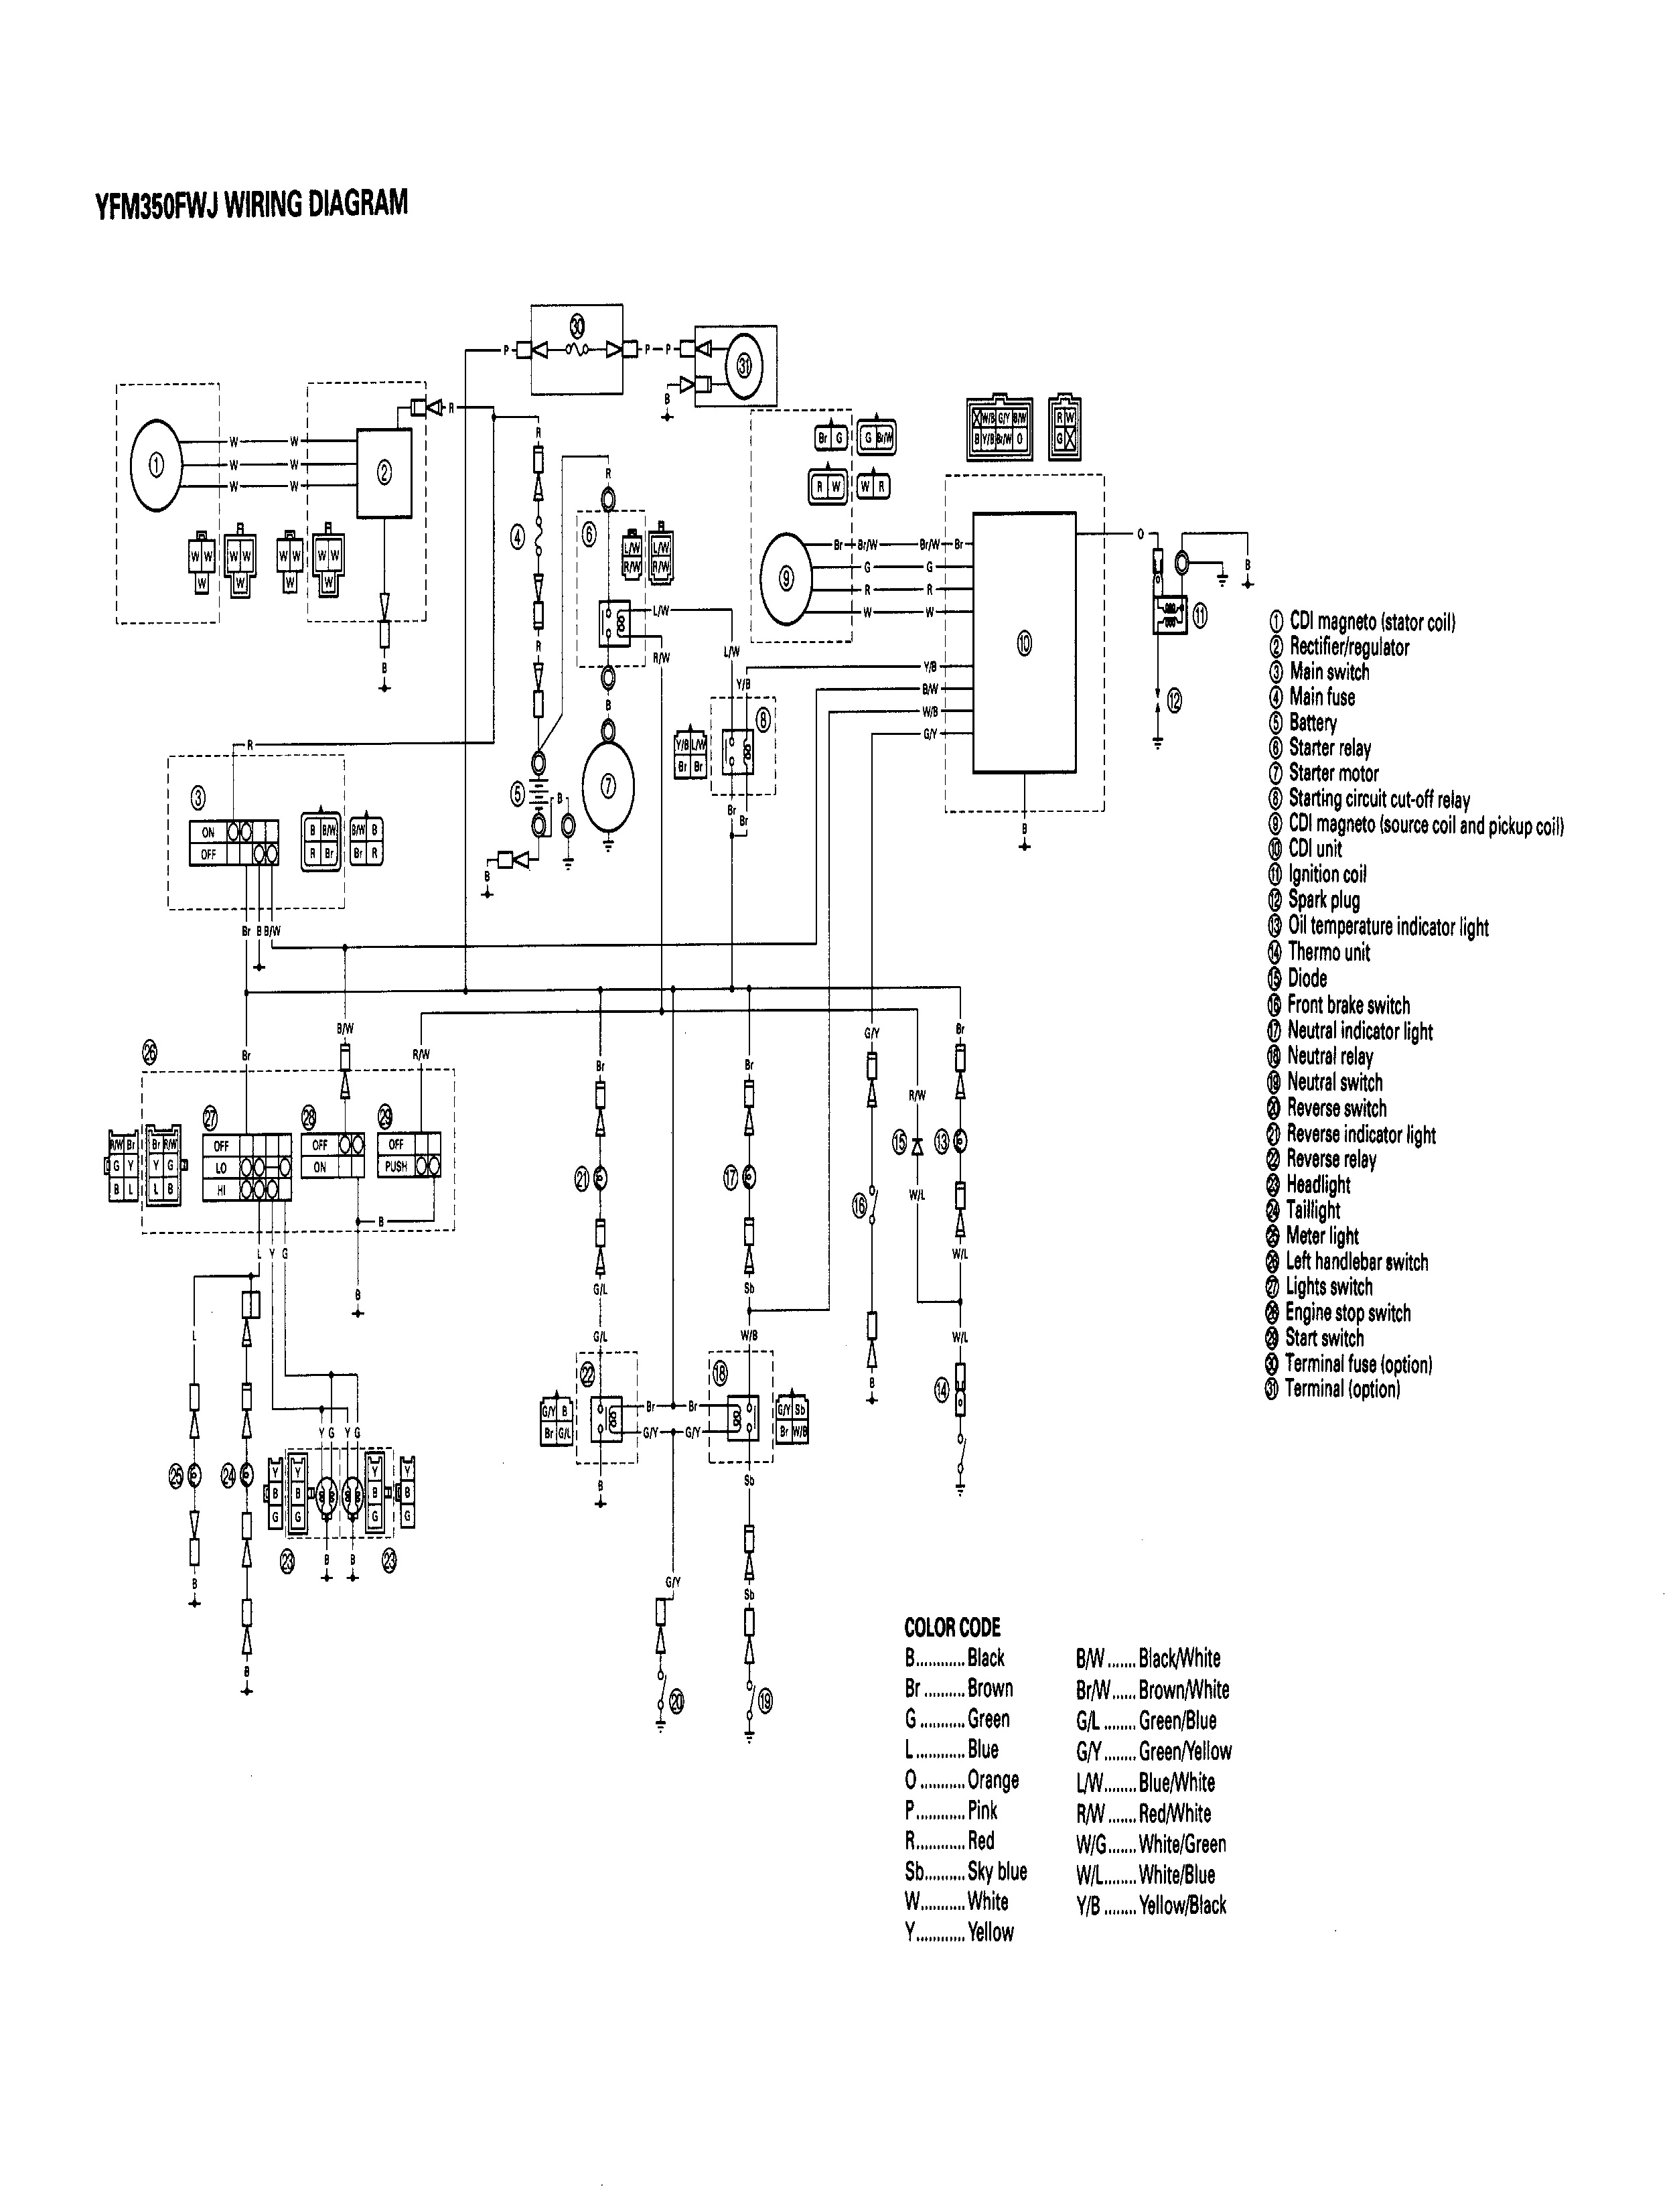 97 Timberwolf Wiring Schematic Worksheet And Diagram Plc Big Bear 350 4x4 Electrical Issue Yamaha Grizzly Atv Forum Rh Grizzlycentral Com Basic Diagrams House